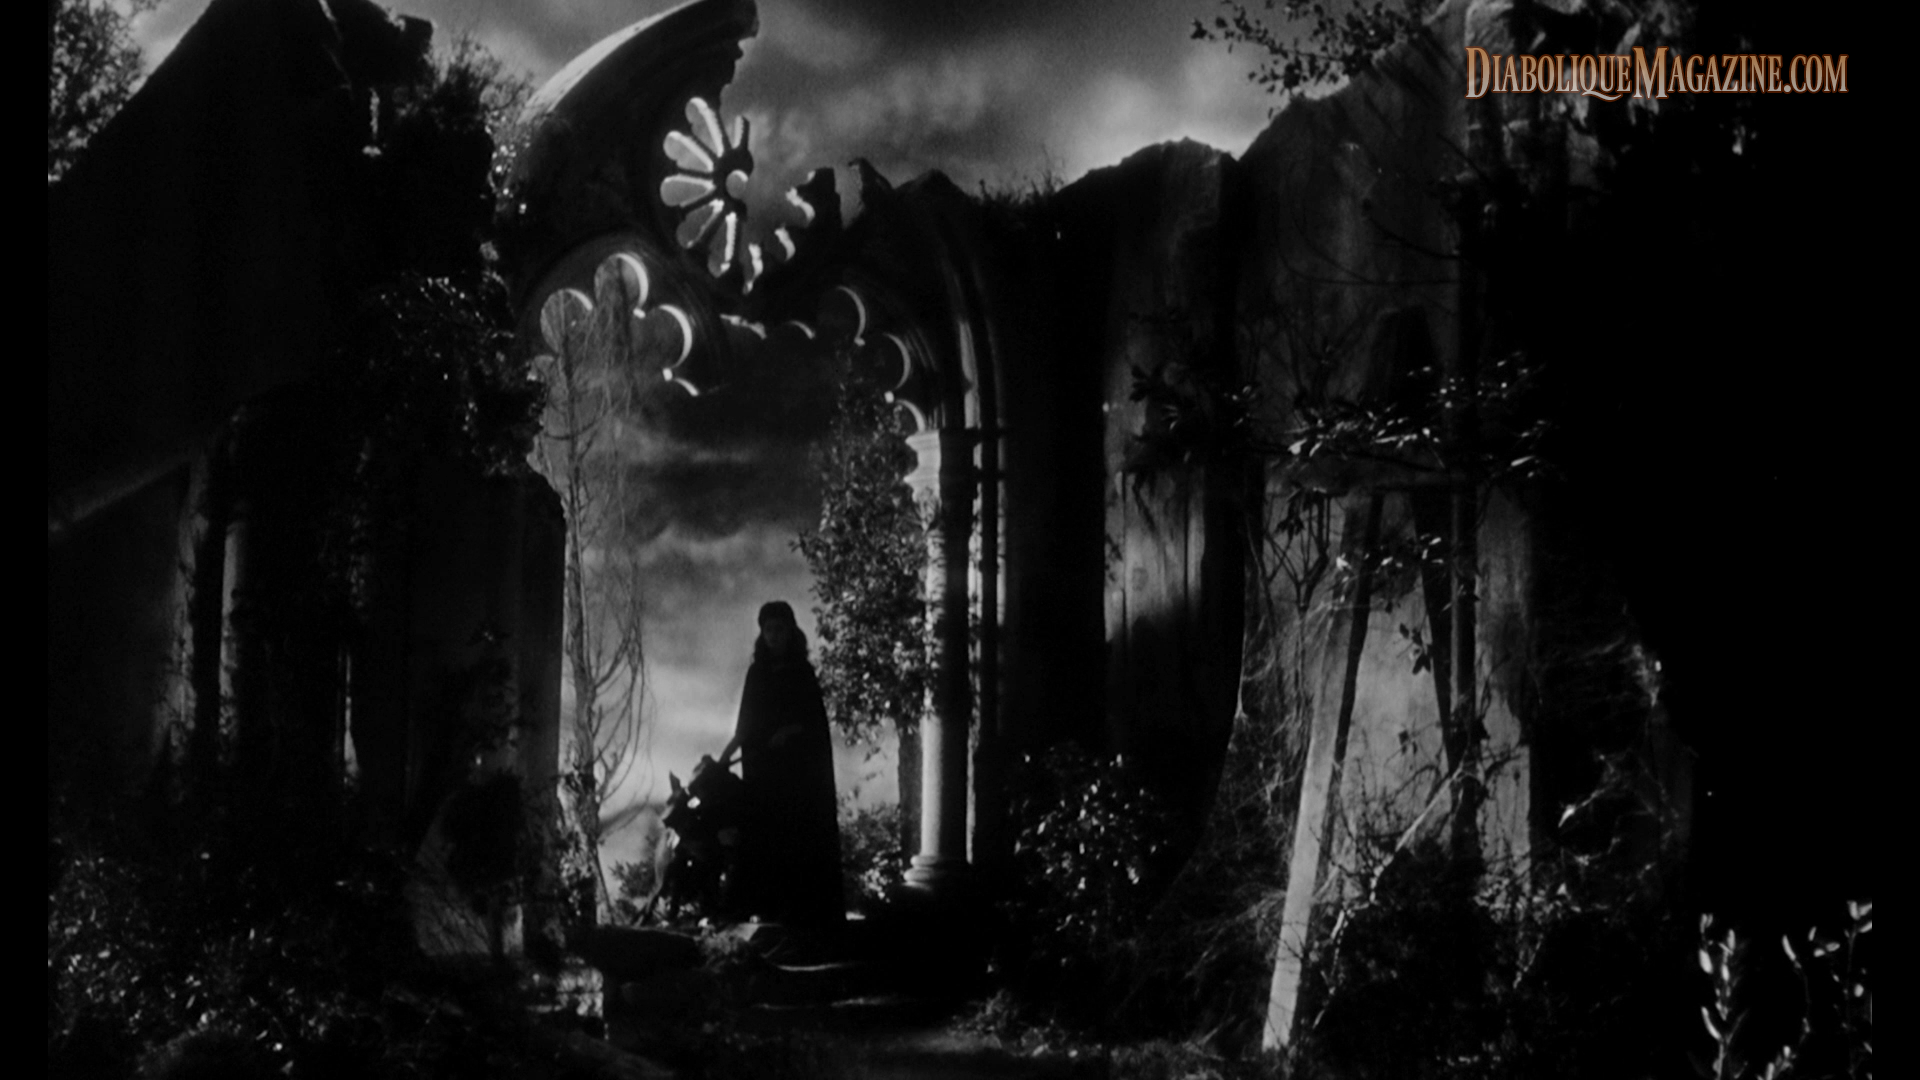 Black Sunday (US Blu-Ray Review [A.I.P. Version